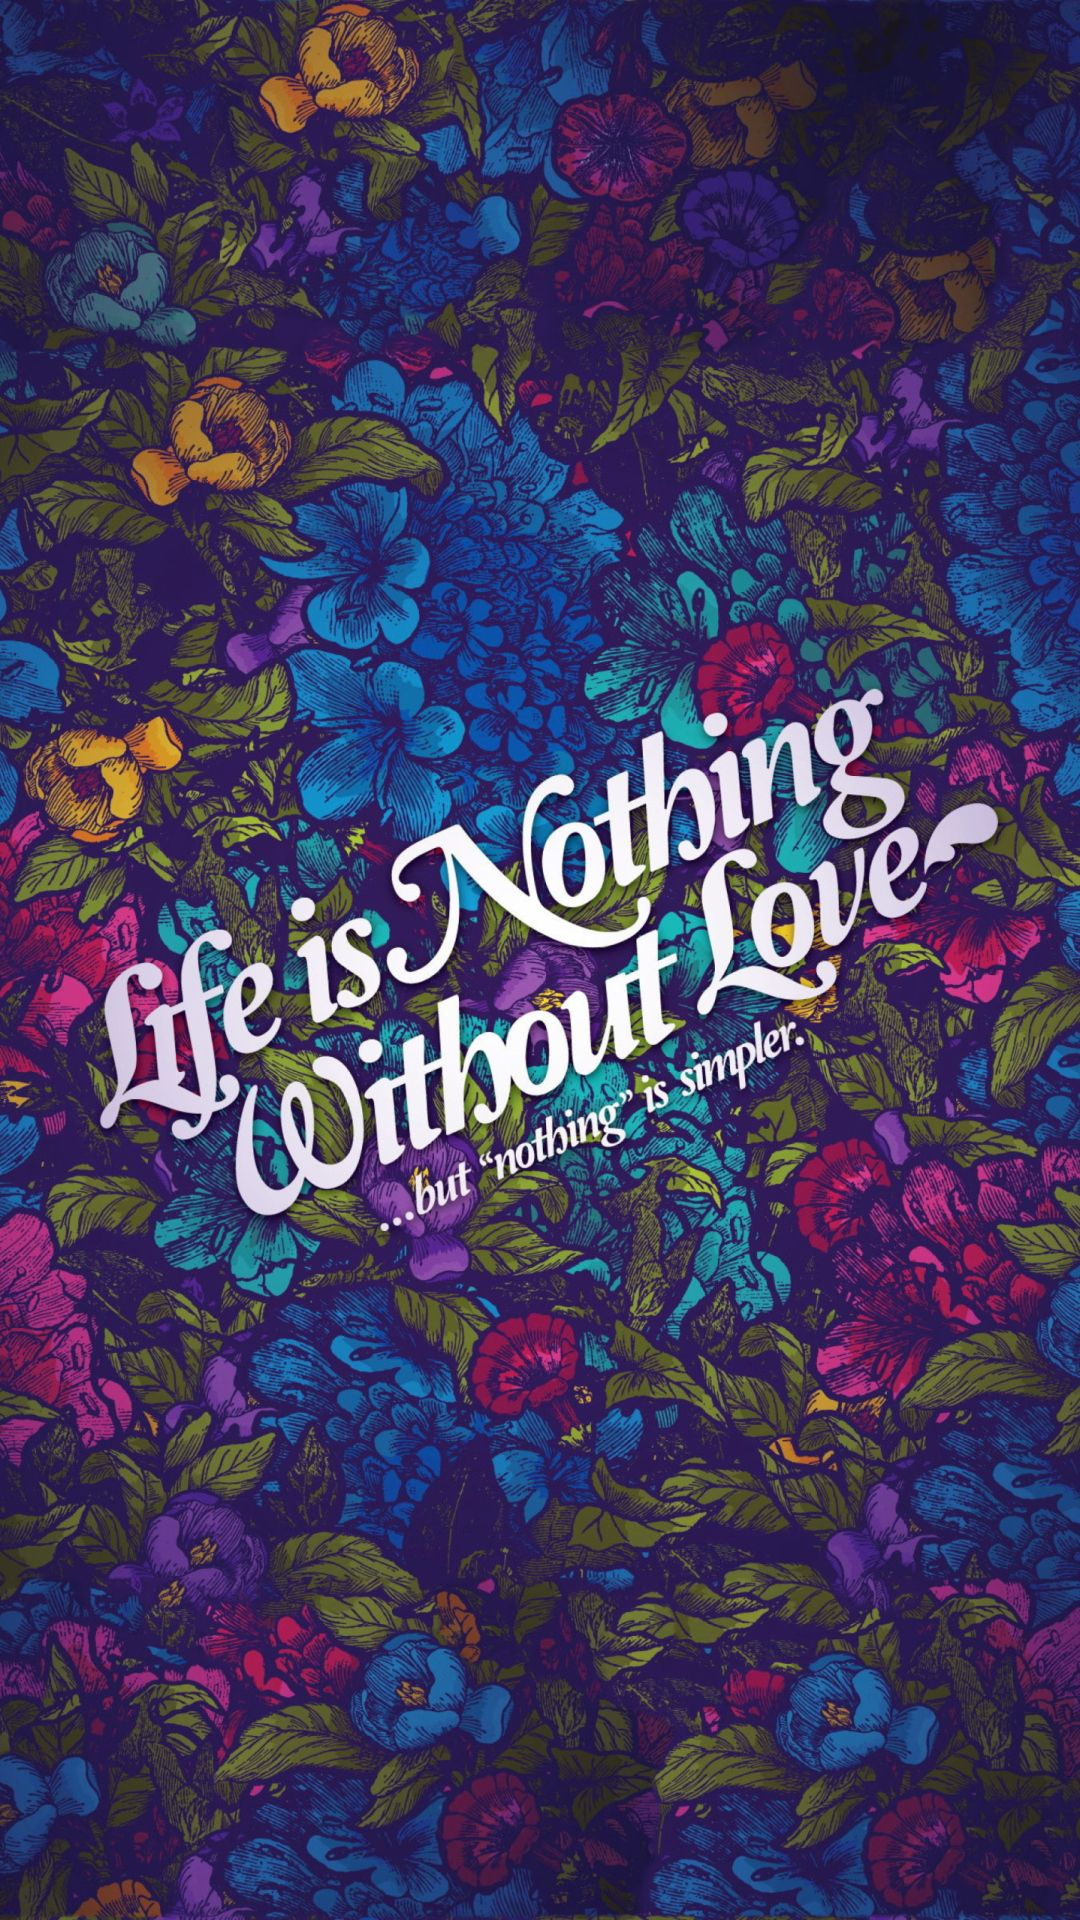 Life Is Nothing Without Love Tap to see more